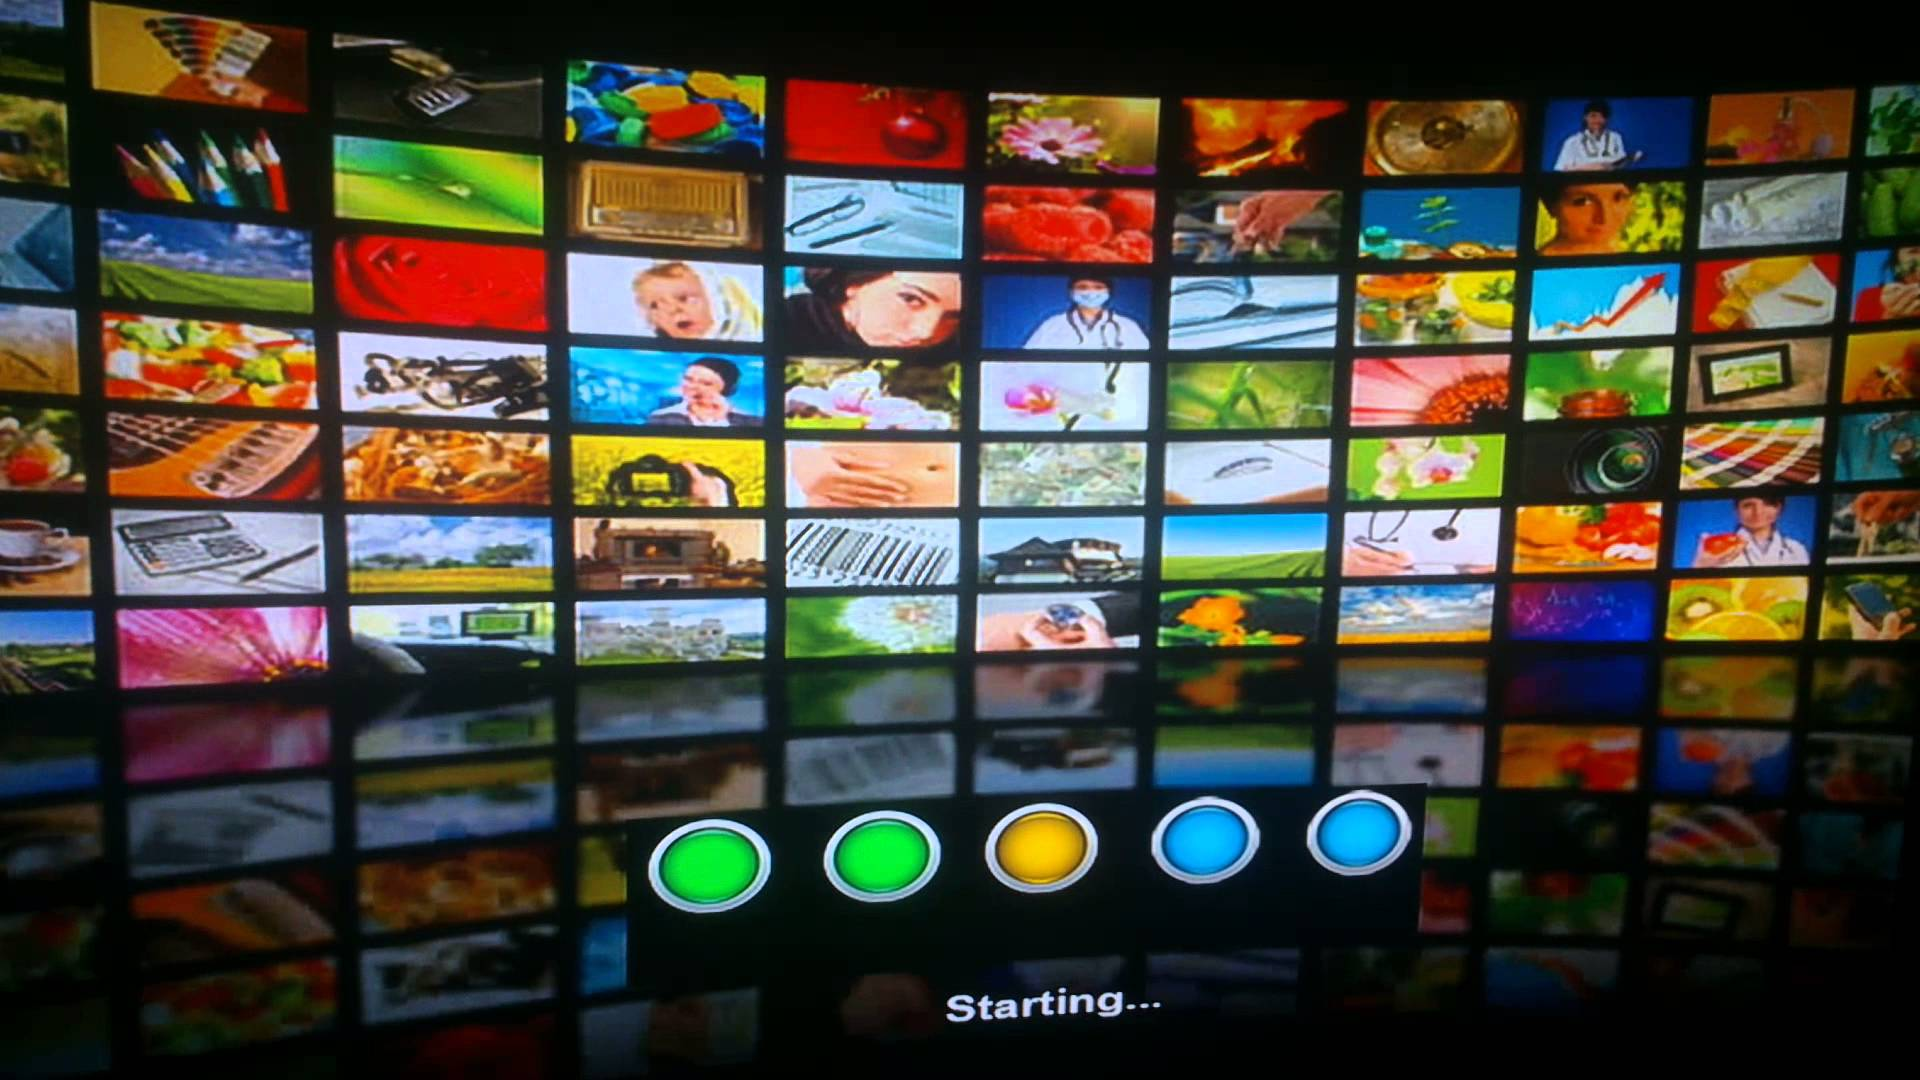 How to find IPTV service provider